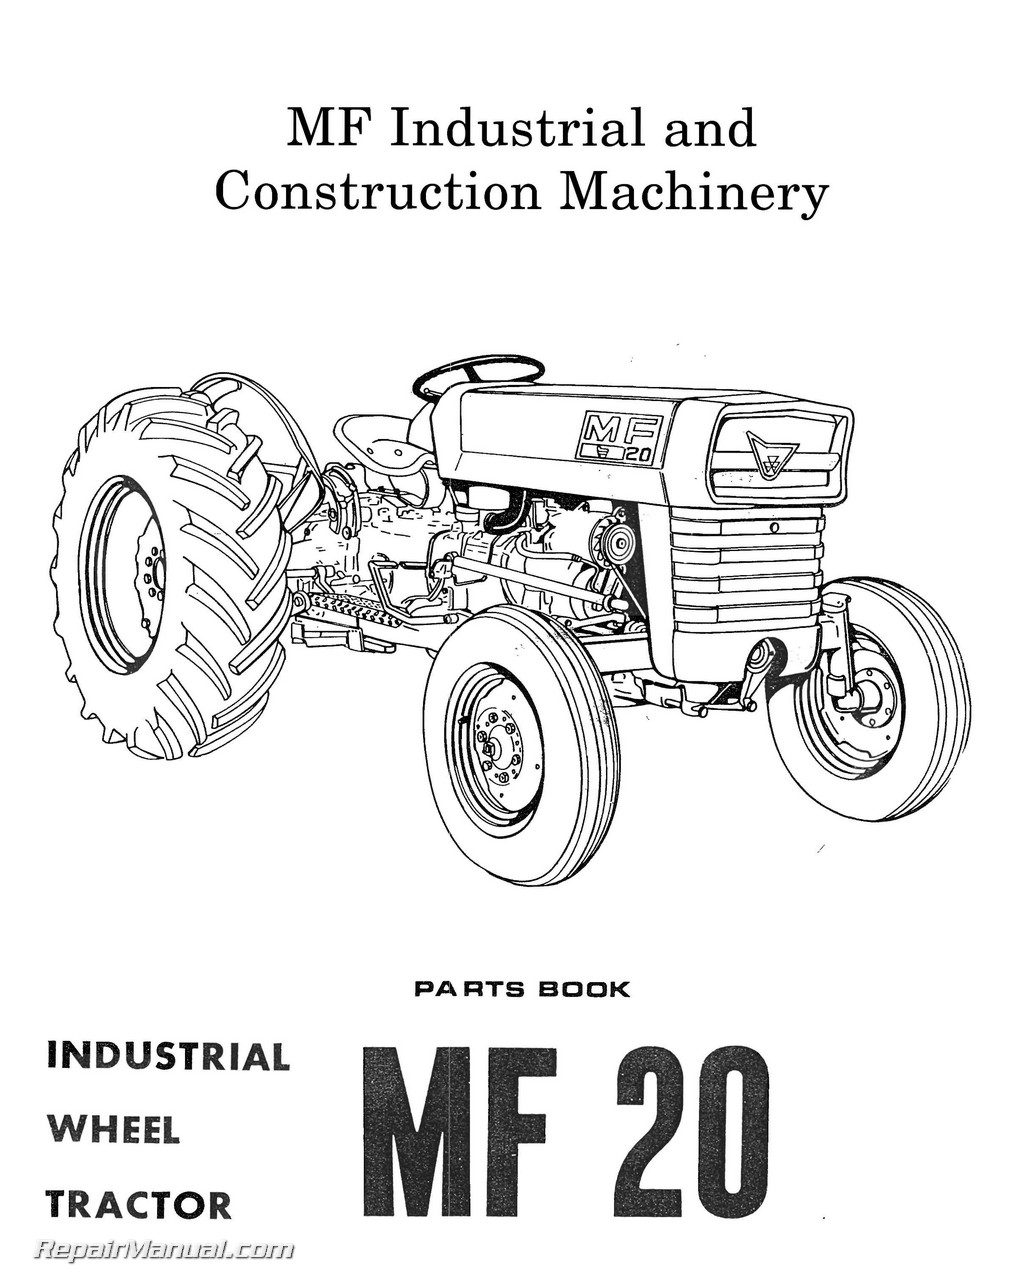 Massey Ferguson Model Mf20 Mf25 Mf30 Industrial Wheel Tractor Parts Manual